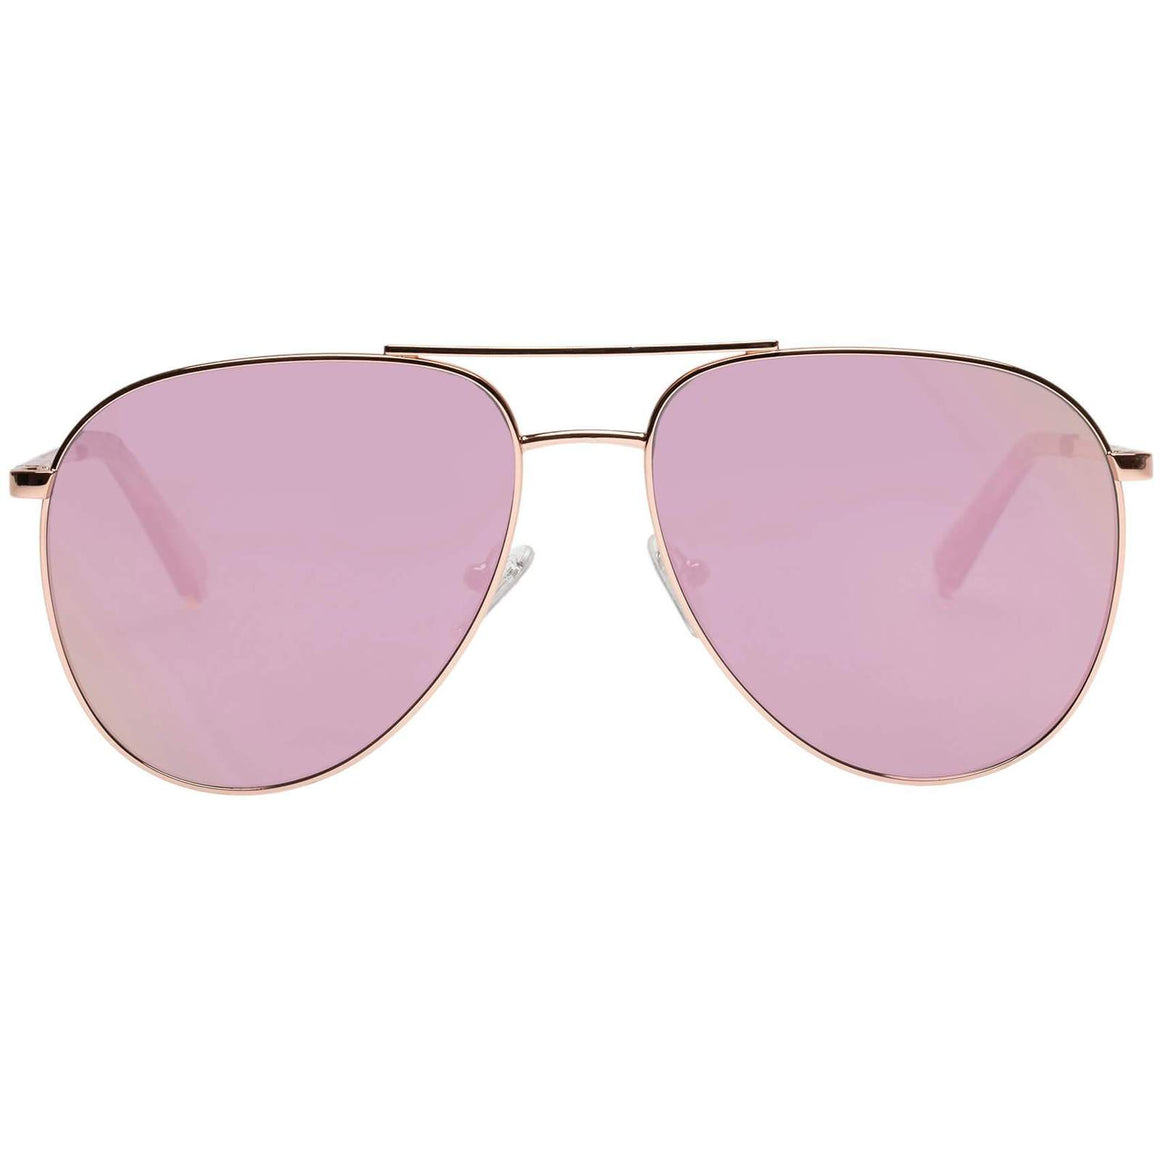 Road Trip - Rose Gold | Shop Le Specs at Wallace&Gibbs in Arrowtown, NZ